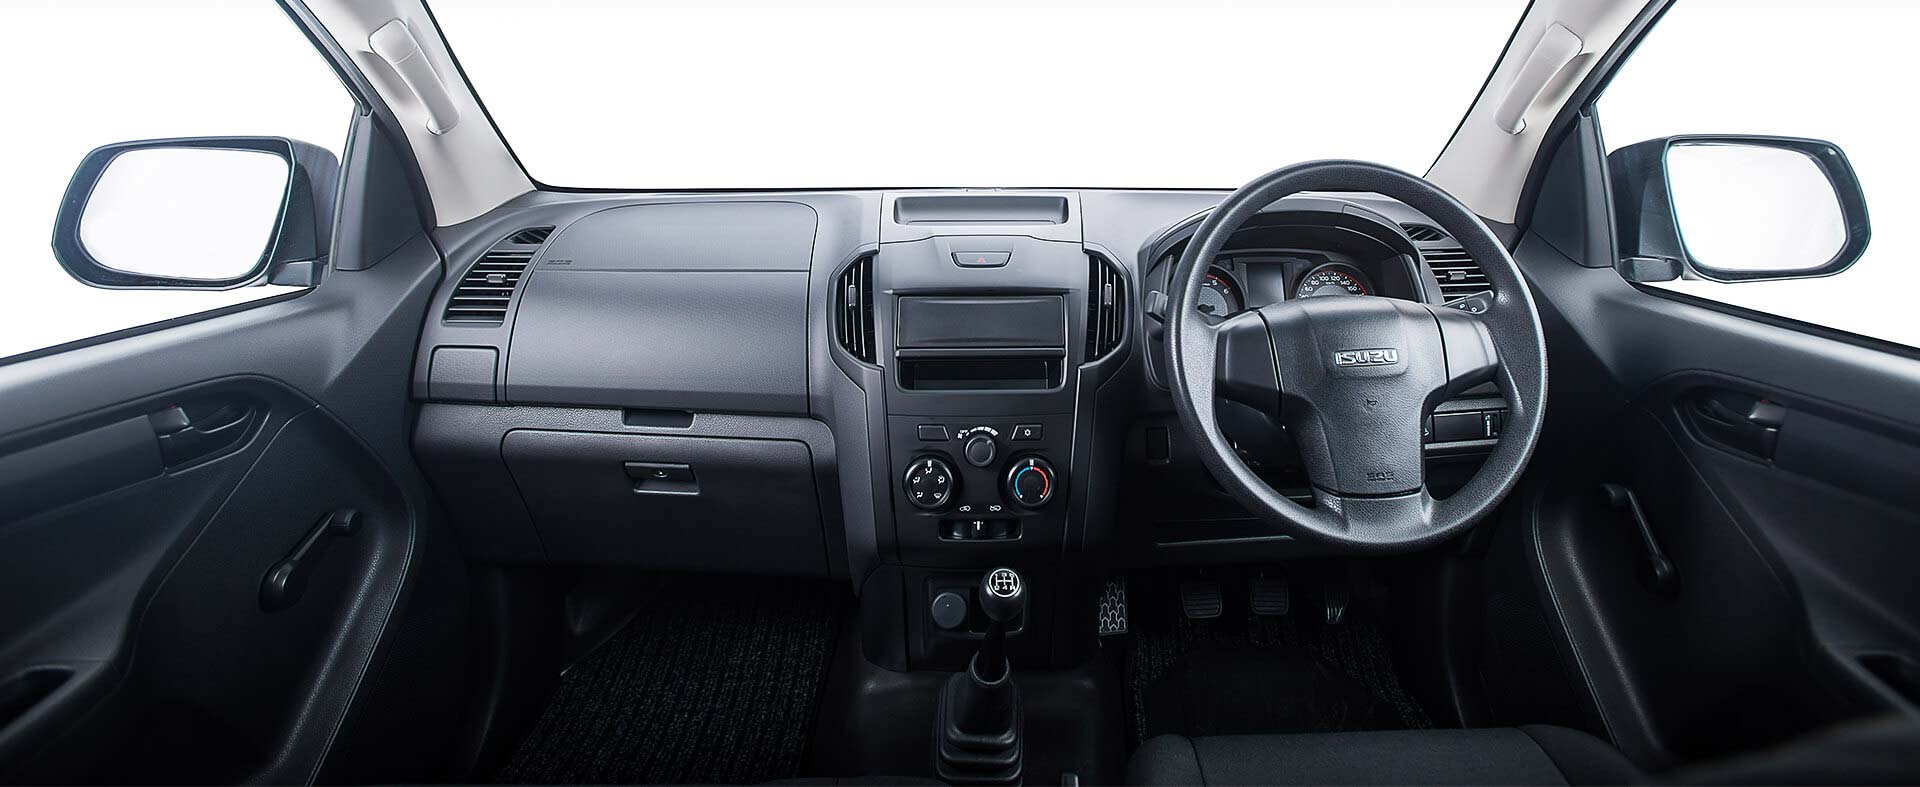 Isuzu Interior Features